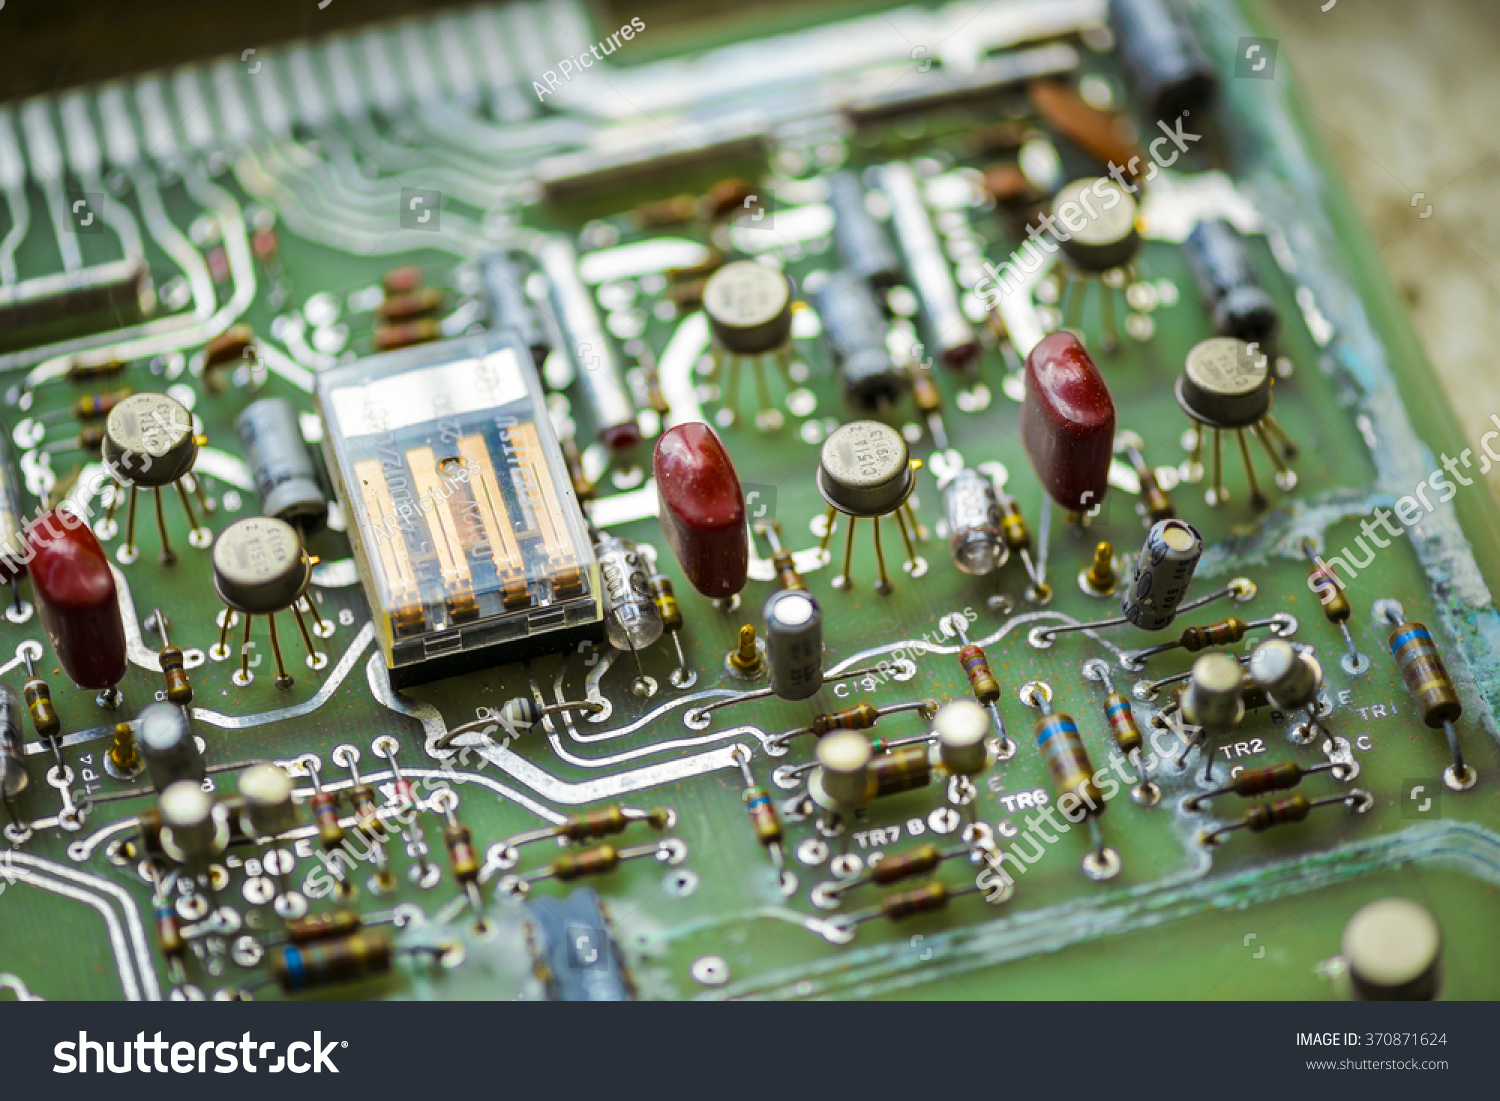 Old Printed Circuit Board Electronic Components Stock Photo Edit Photos Images Pictures Shutterstock With